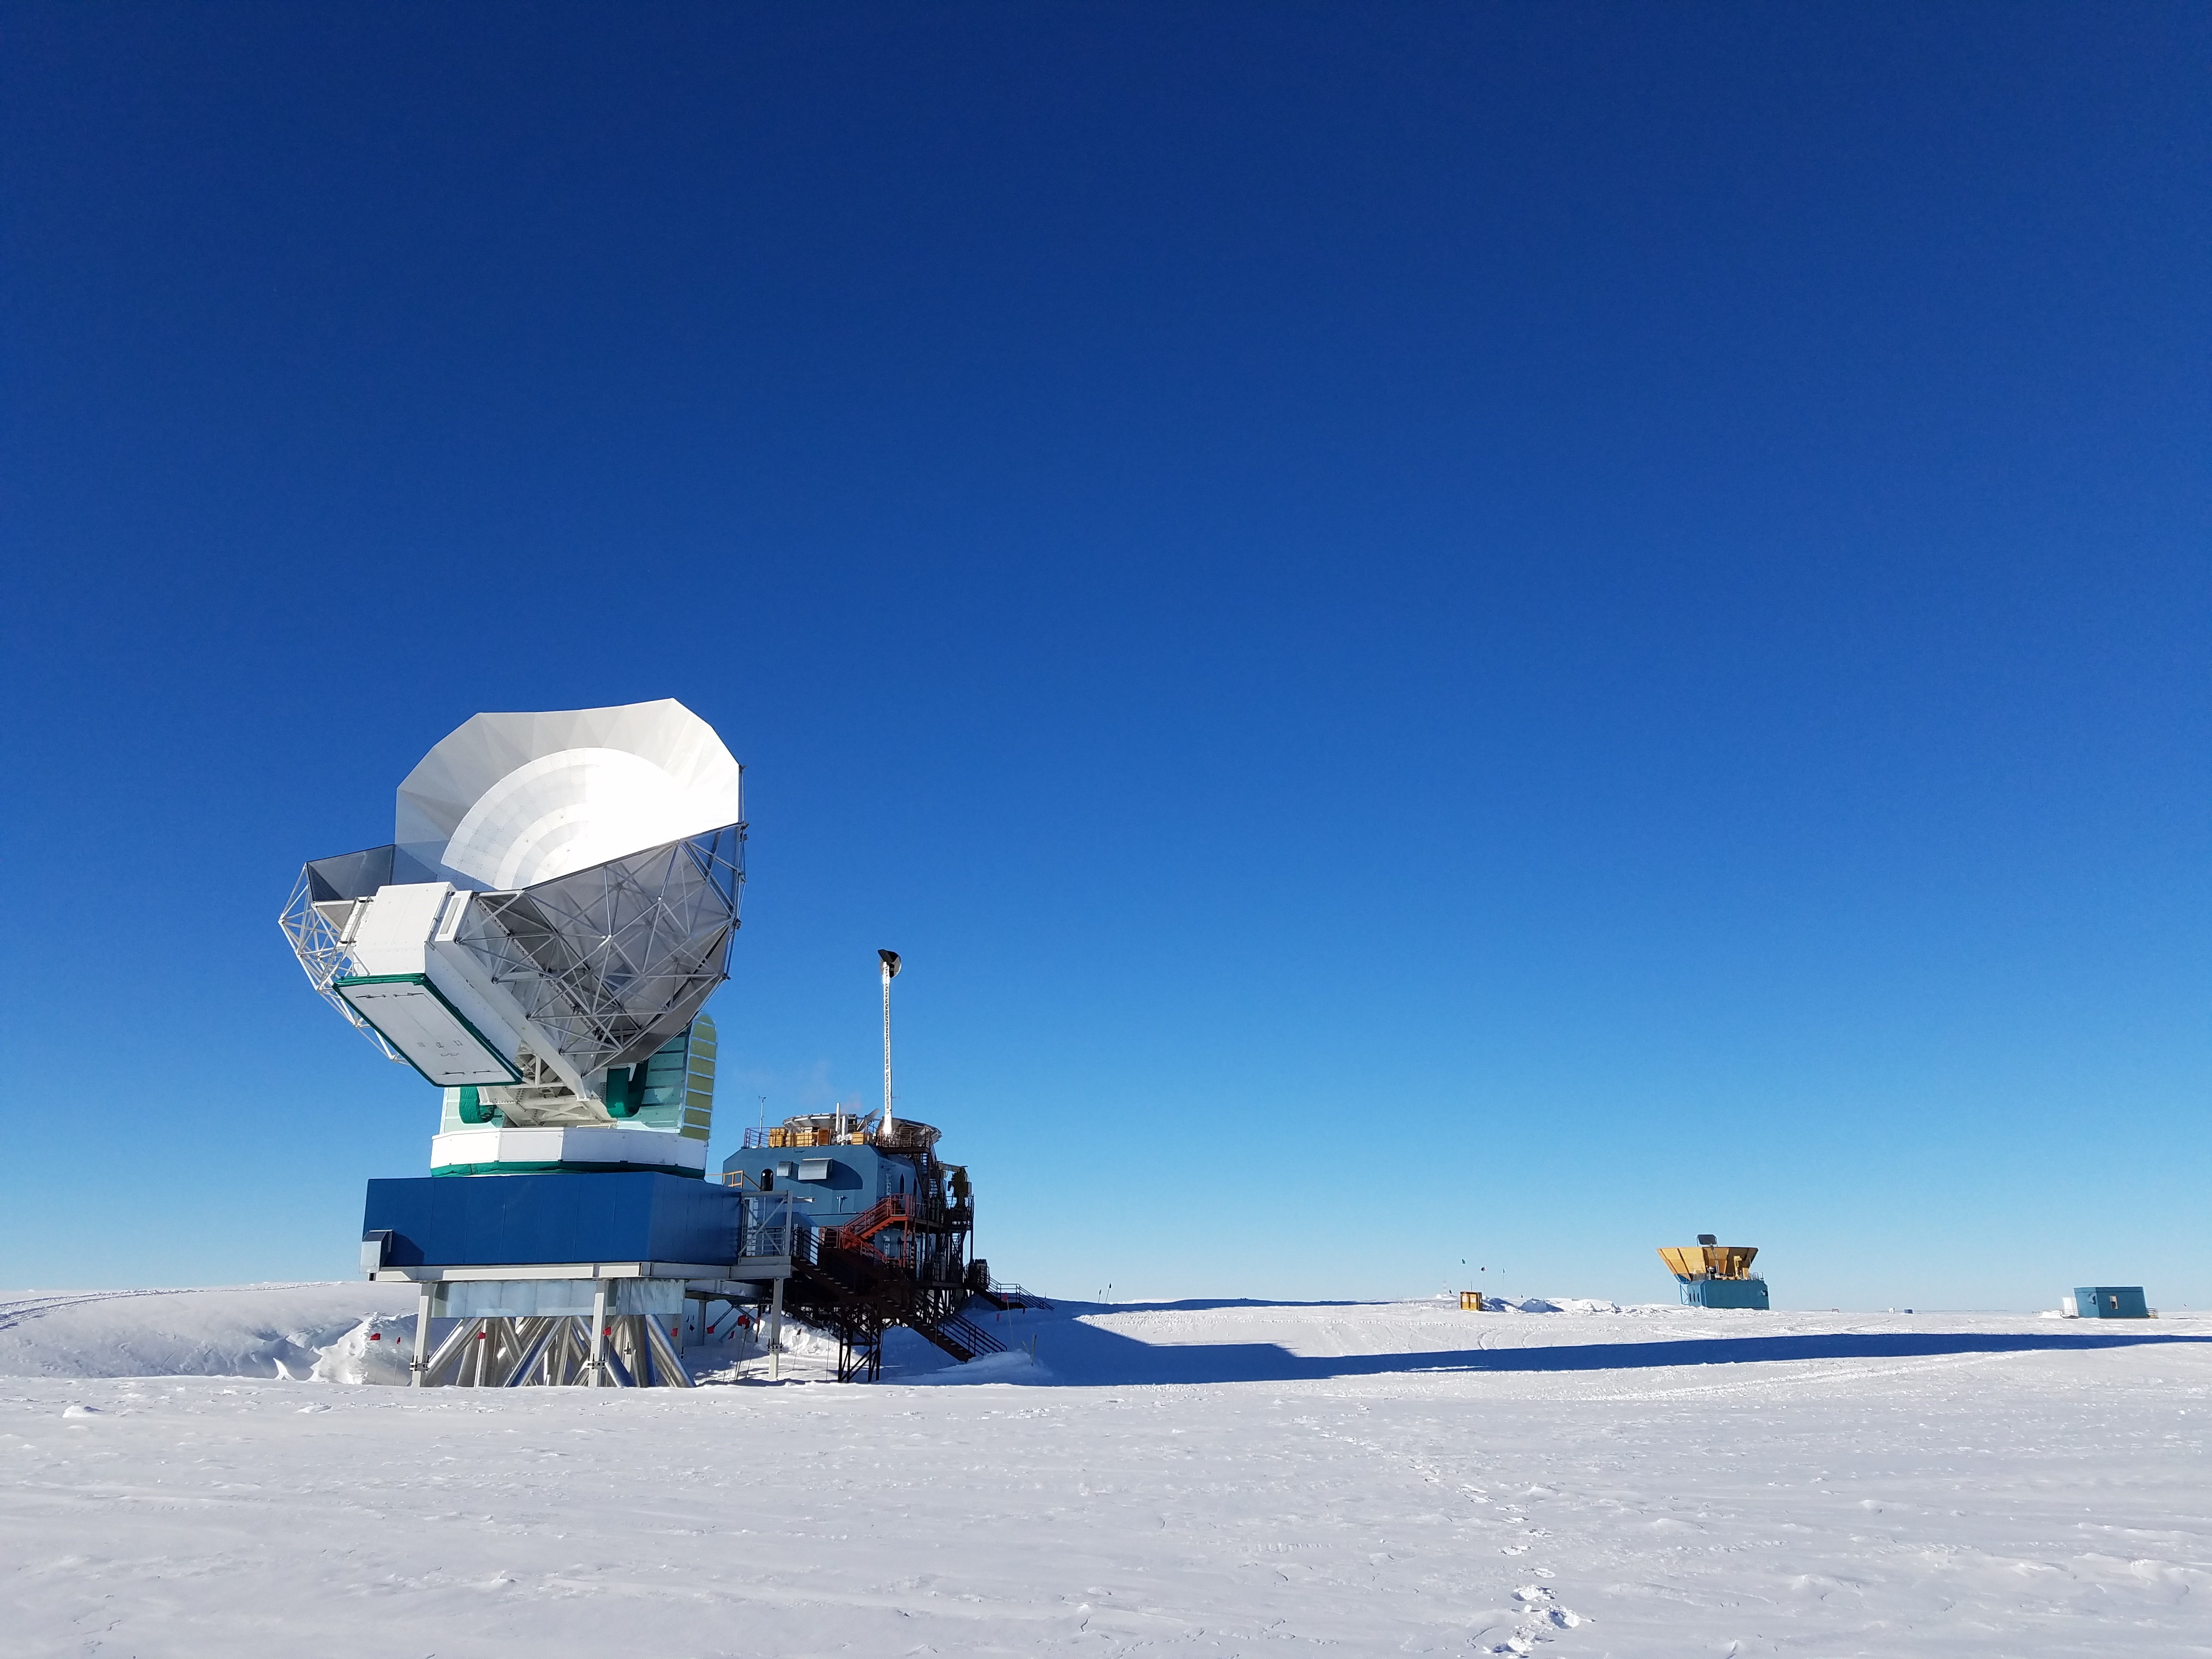 The South Pole Telescope is the latest to join the globe-spanning array of radio telescopes working together to take a direct image of the supermassive black hole at the center of our Milky Way.